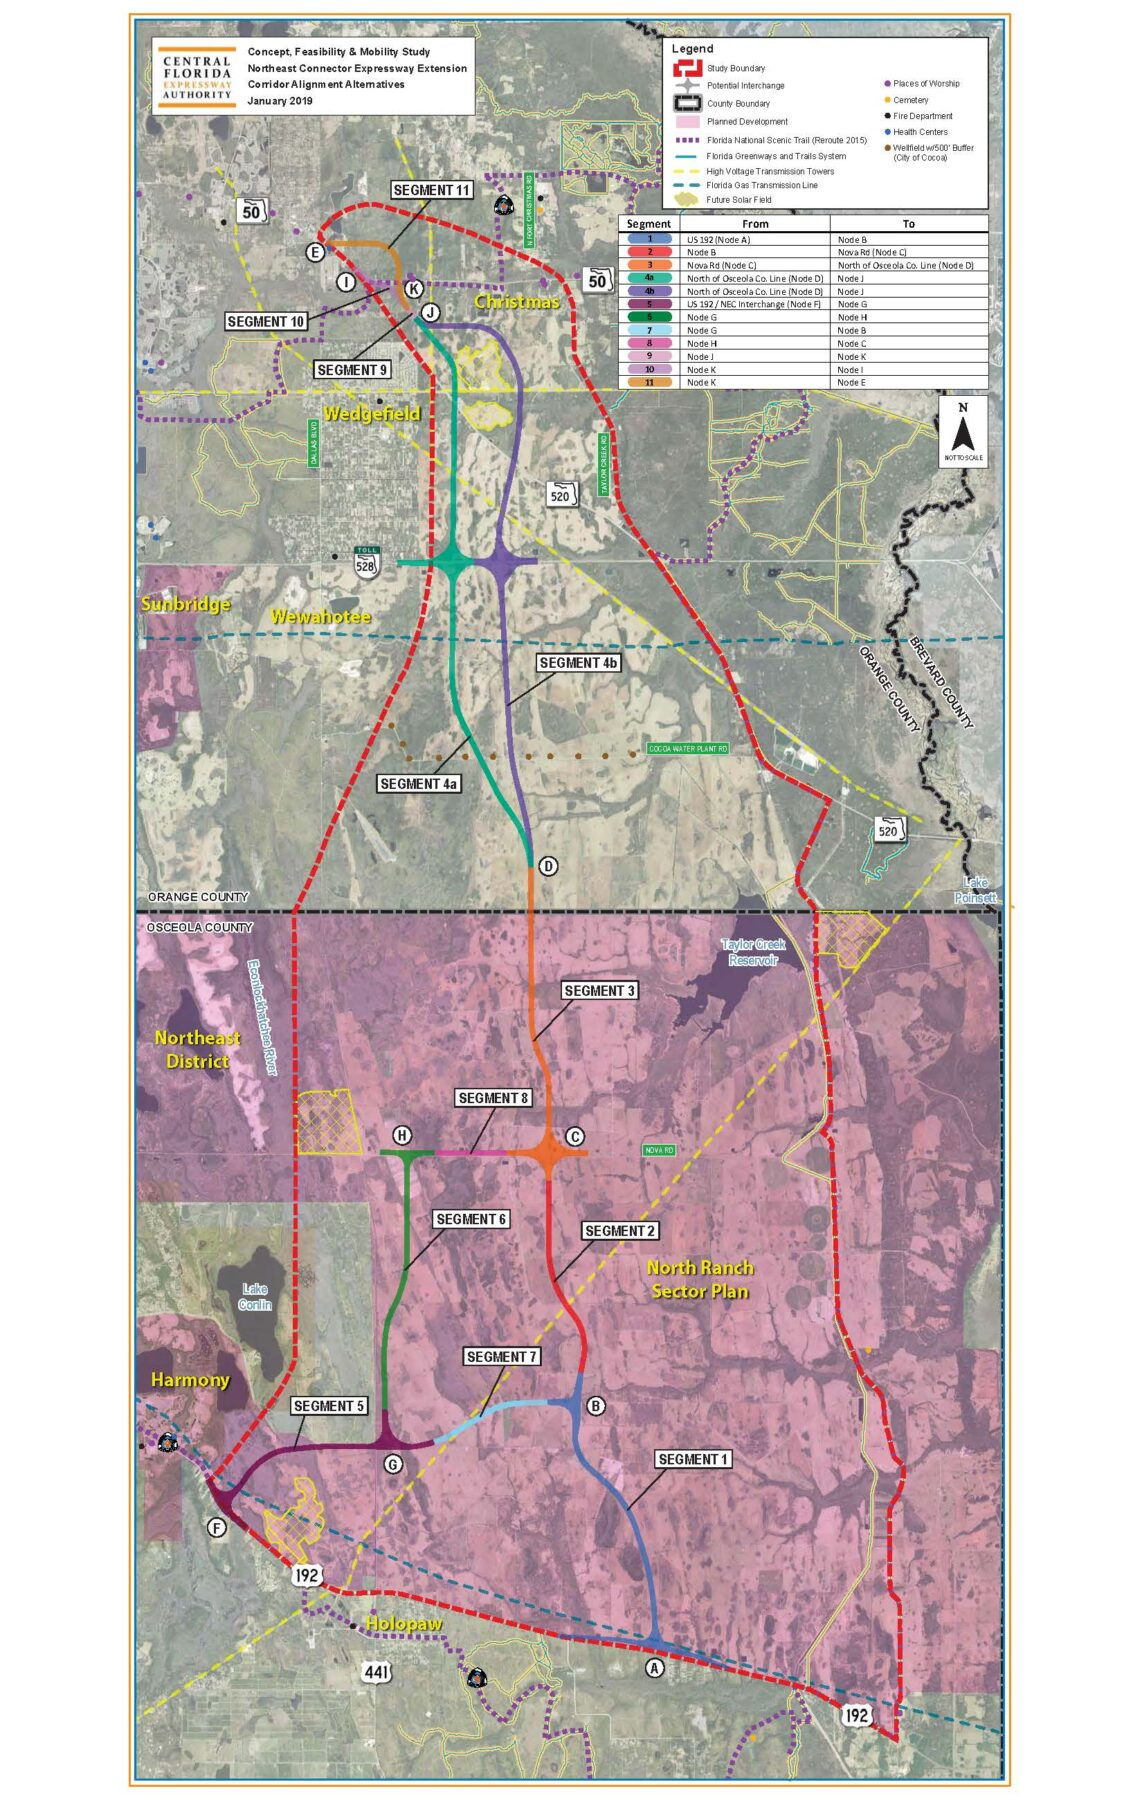 Central Florida Expressway Authority Northeast Connector Expressway Extension Corridor Alignment Alternatives January 2019